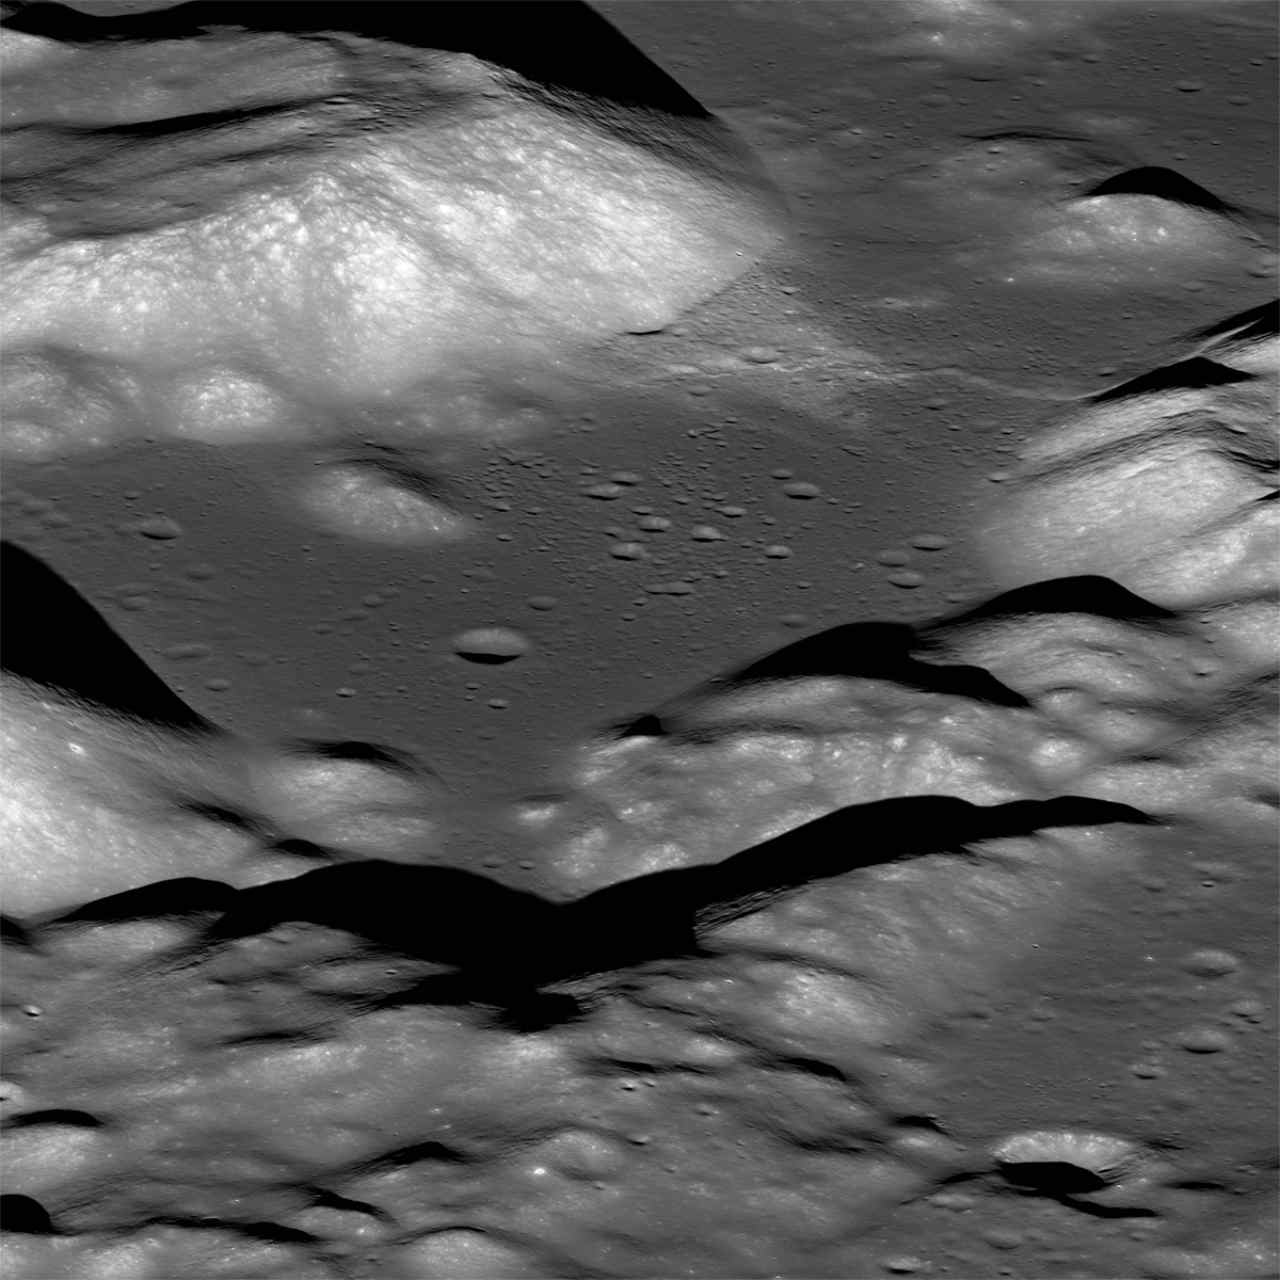 A view of the Taurus-Littrow valley taken by NASA's Lunar Reconnaissance Orbiter spacecraft. The valley was explored in 1972 by the Apollo 17 astronauts Eugene Cernan and Harrison Schmitt. Image: NASA/LROC